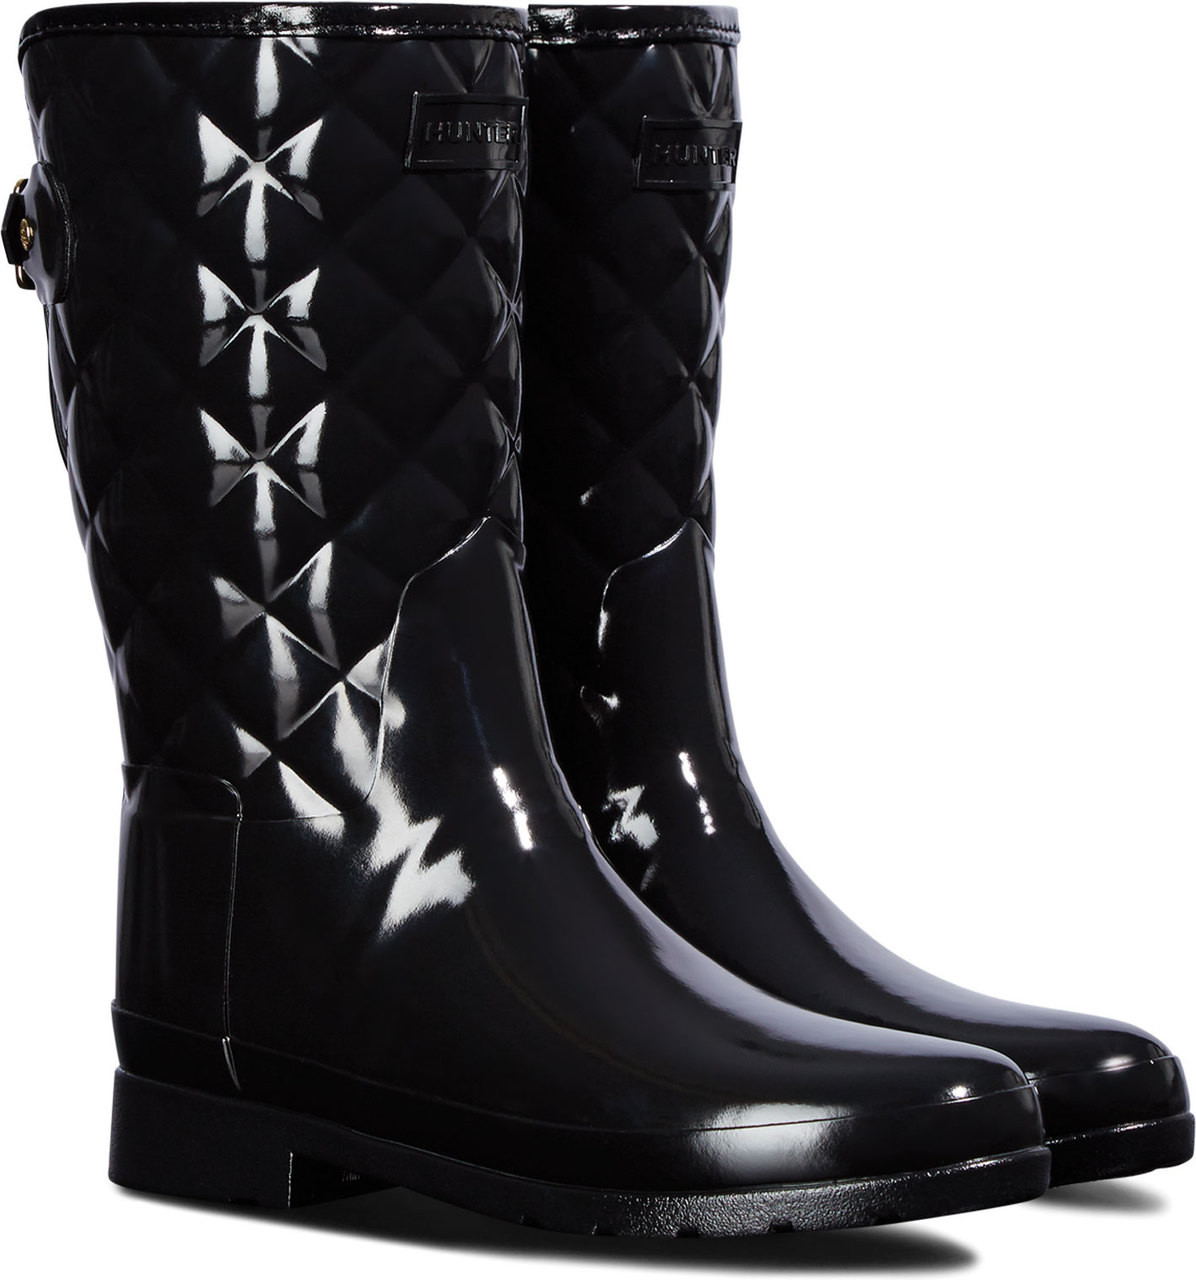 2955a6aa7bb Hunter Women's Original Short Refined Quilted Gloss Rain Boot